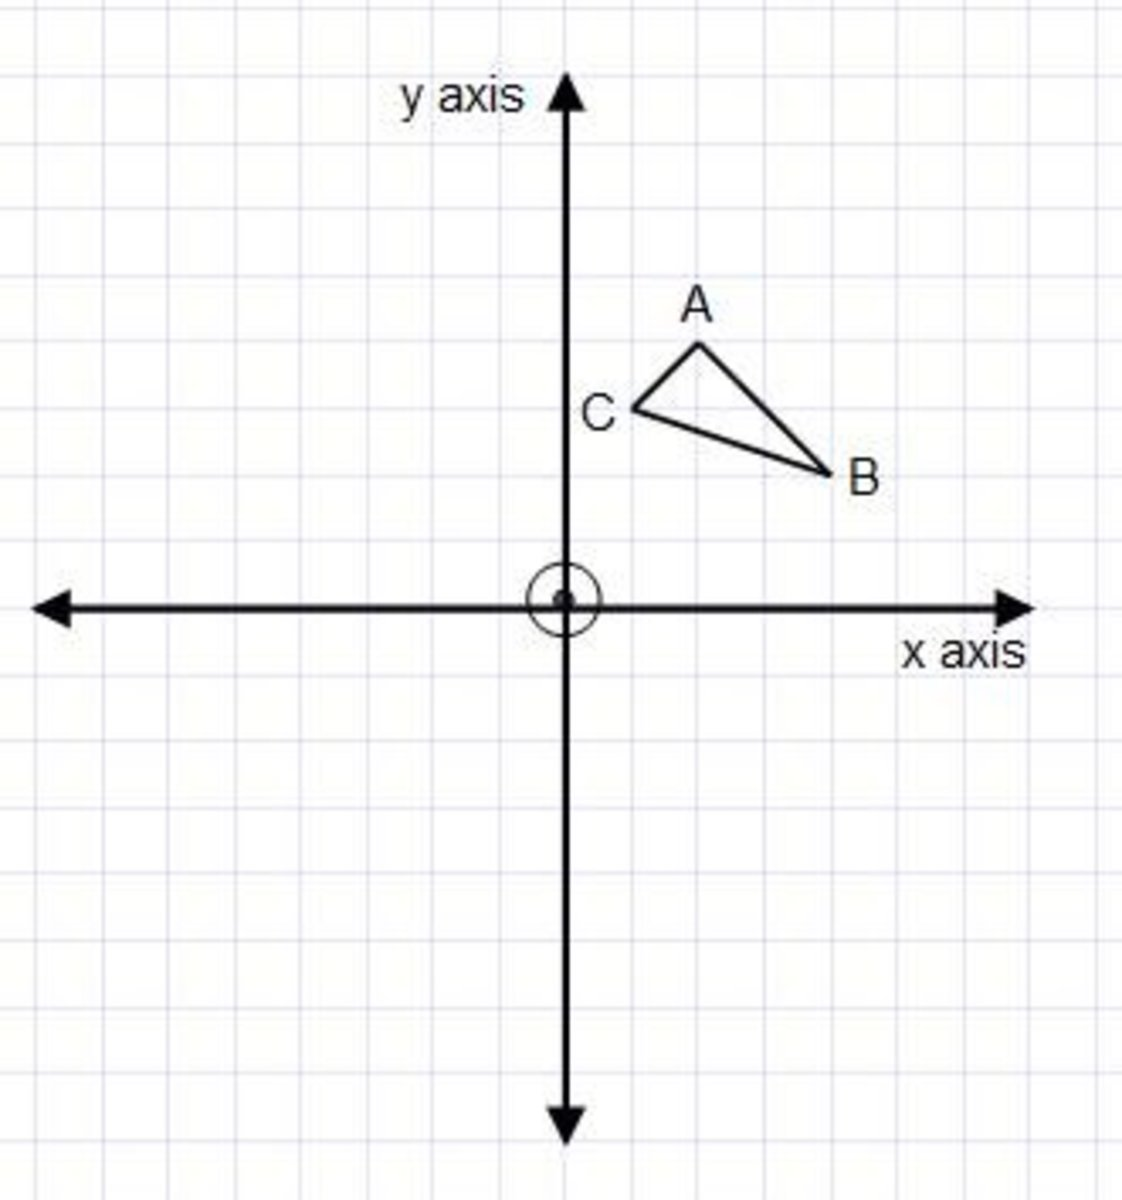 Examples on how to reflect a shape in the x-axis or y-axis on a coordinate grid.